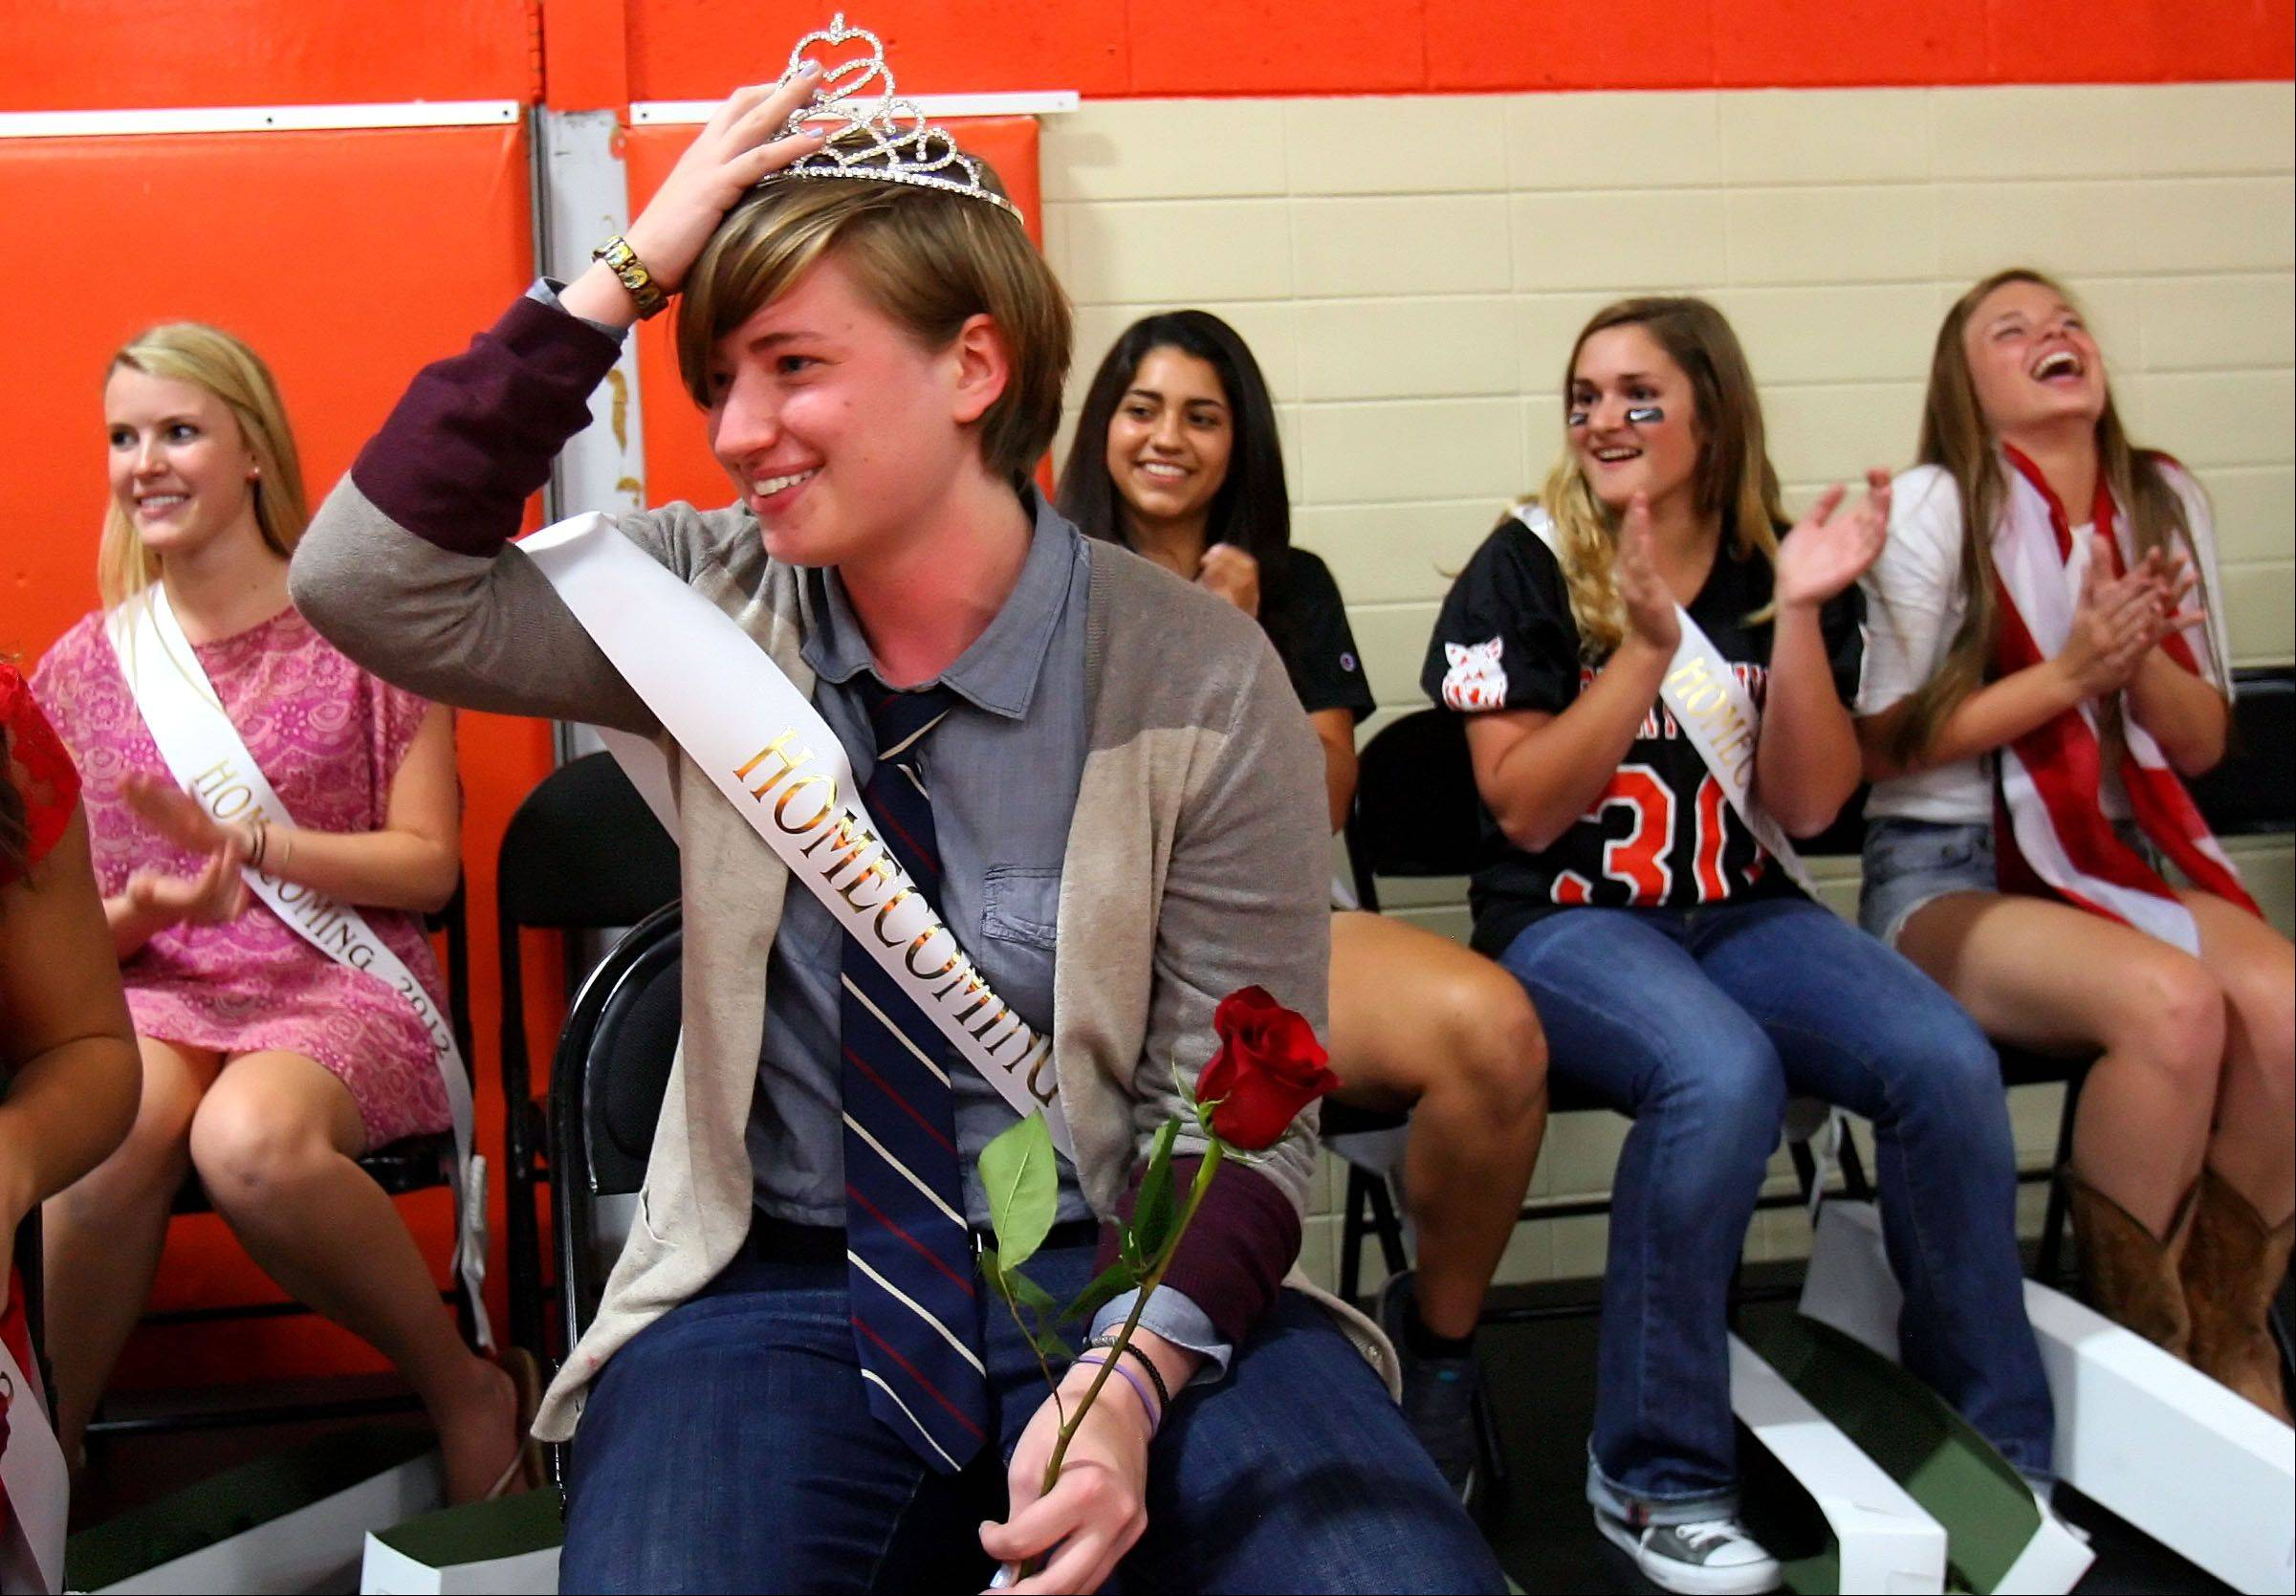 Libertyville High School senior Emily Gilbertsen reacts after receiving the homecoming queen crown.